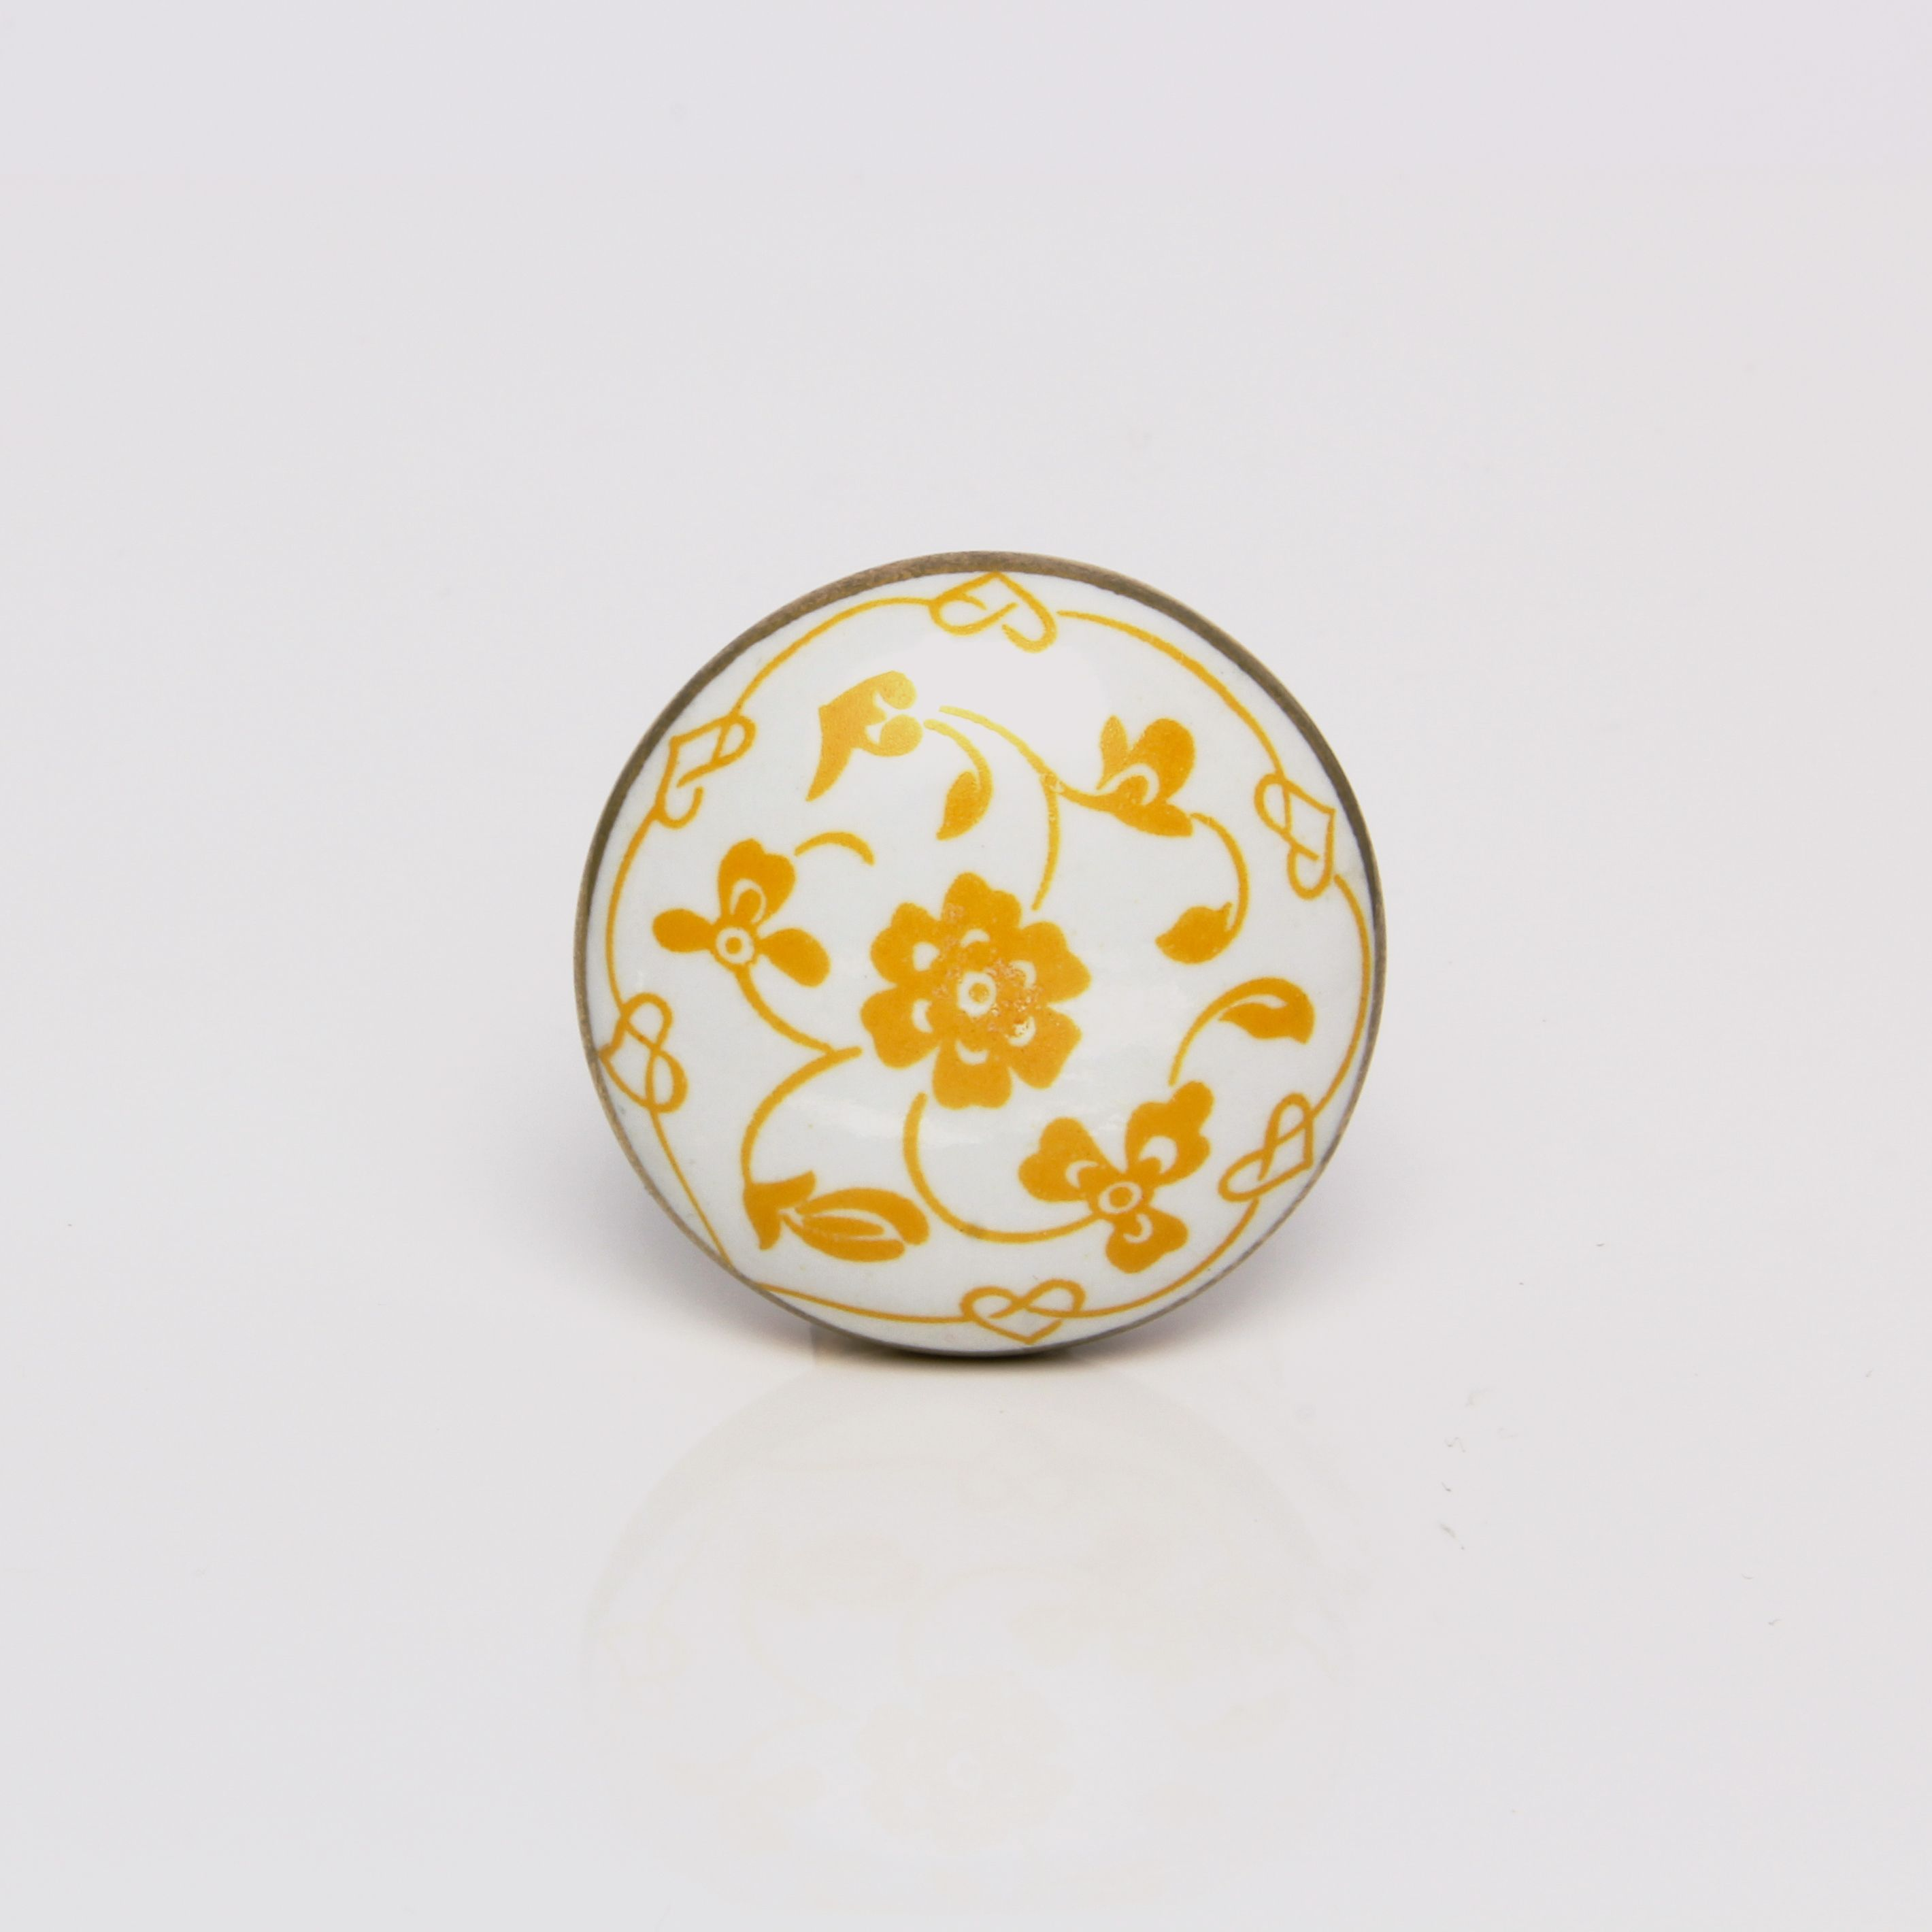 ceramic cabinet knobs share for the home pinterest